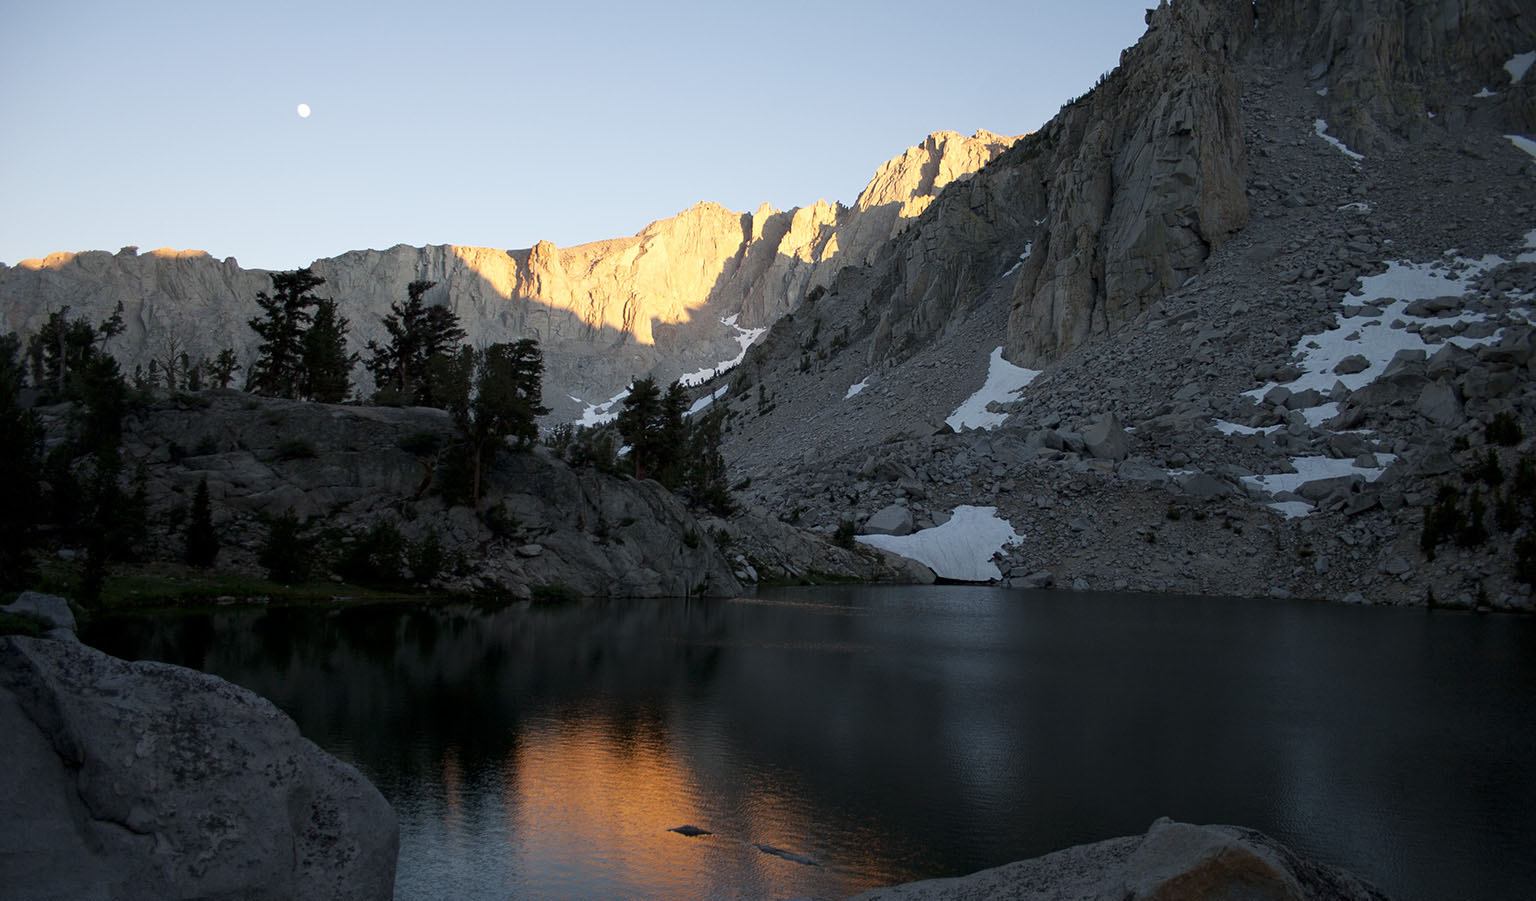 Heart Lake before sunset. Our camp was on the boulder left of center